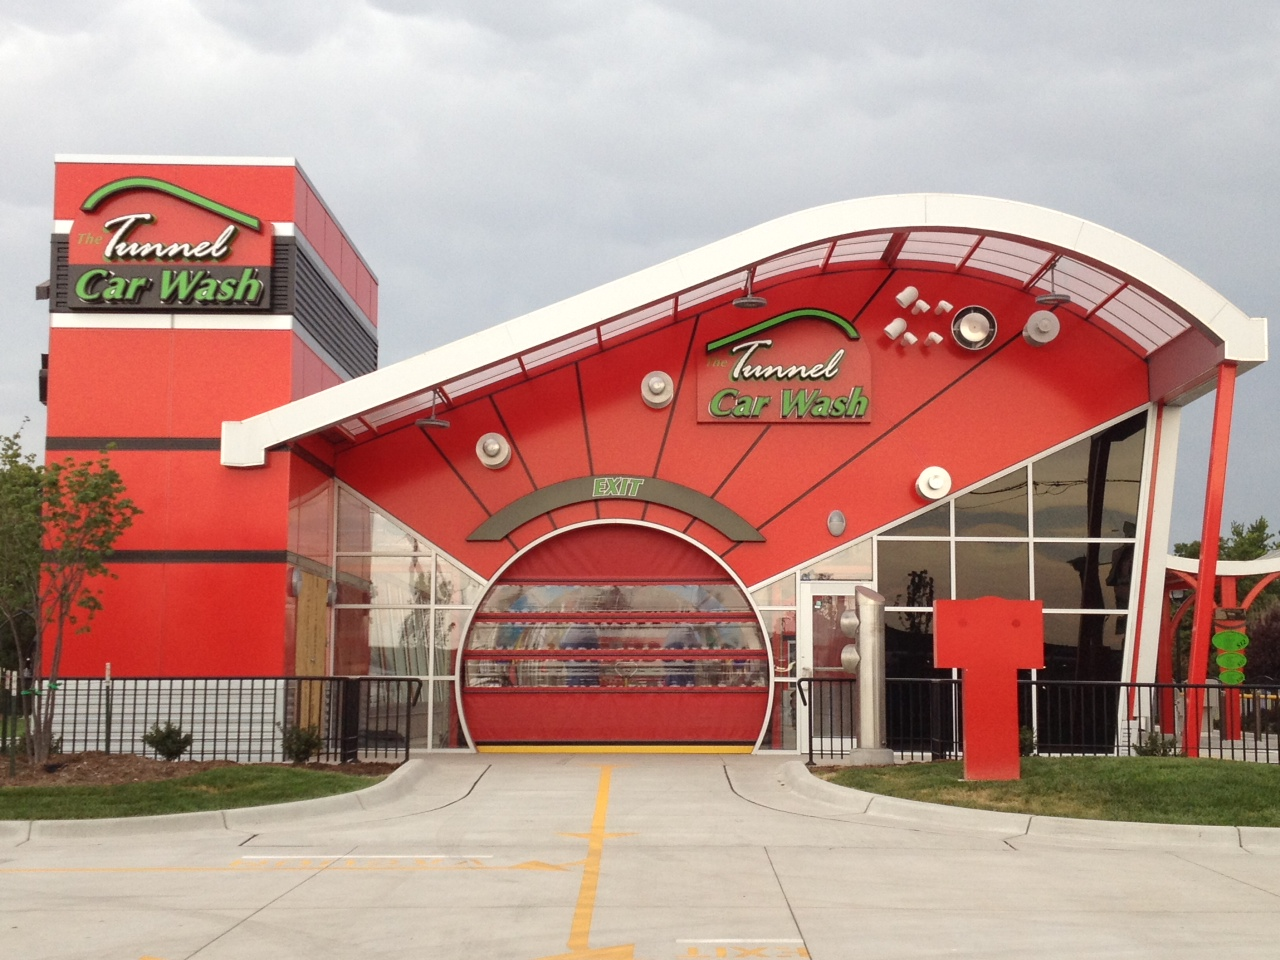 Tunnel Car Wash (Garden City)